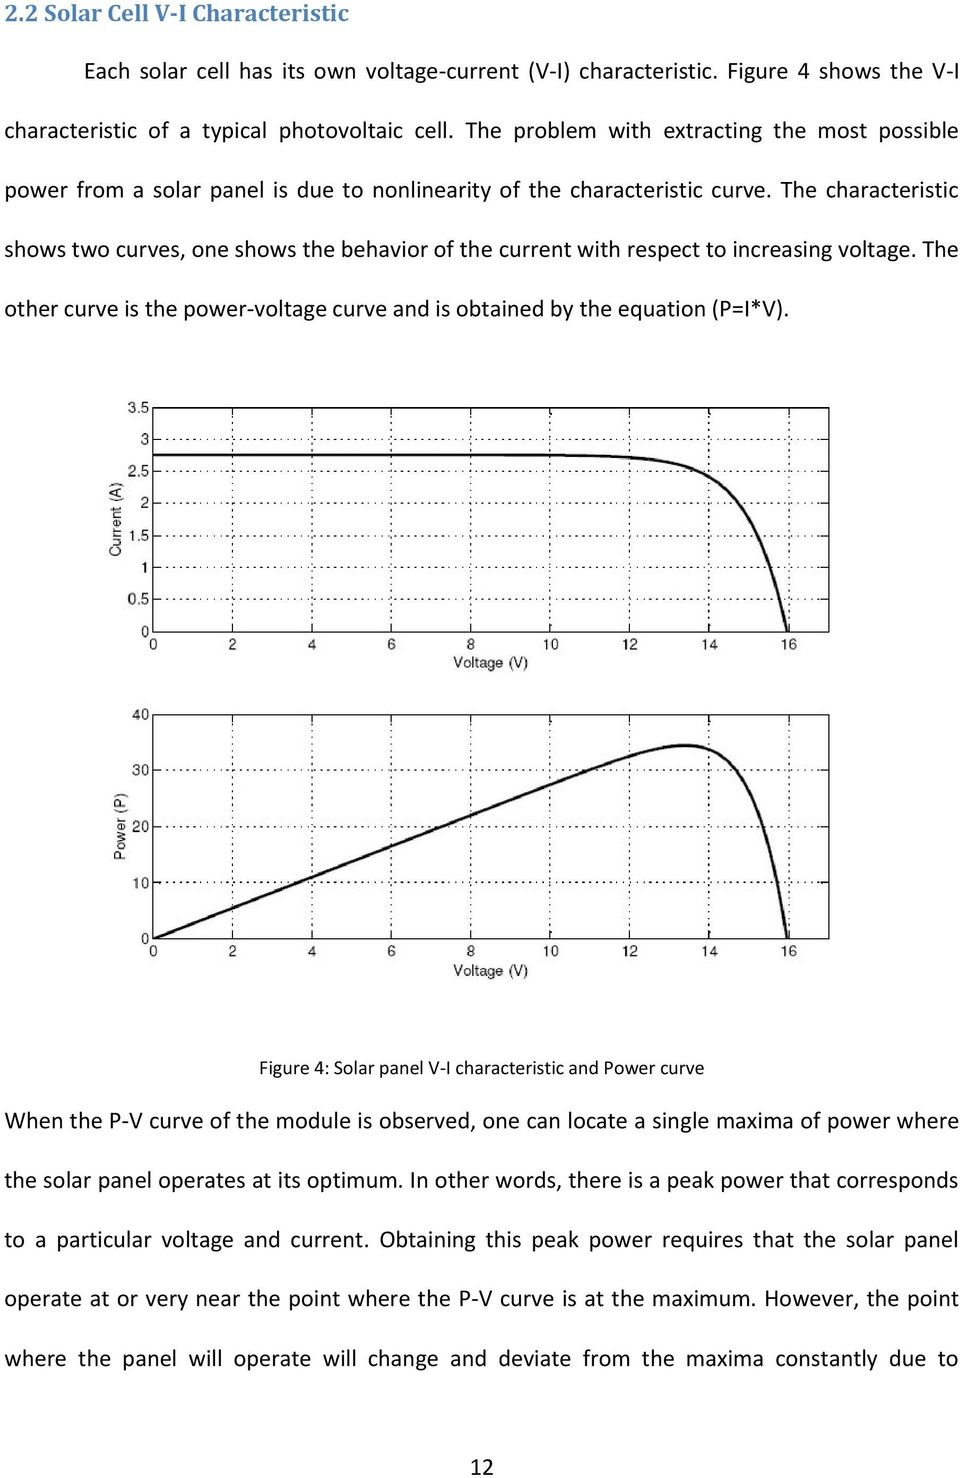 The characteristic shows two curves, one shows the behavior of the current with respect to increasing voltage. The other curve is the power-voltage curve and is obtained by the equation (P=I*V).